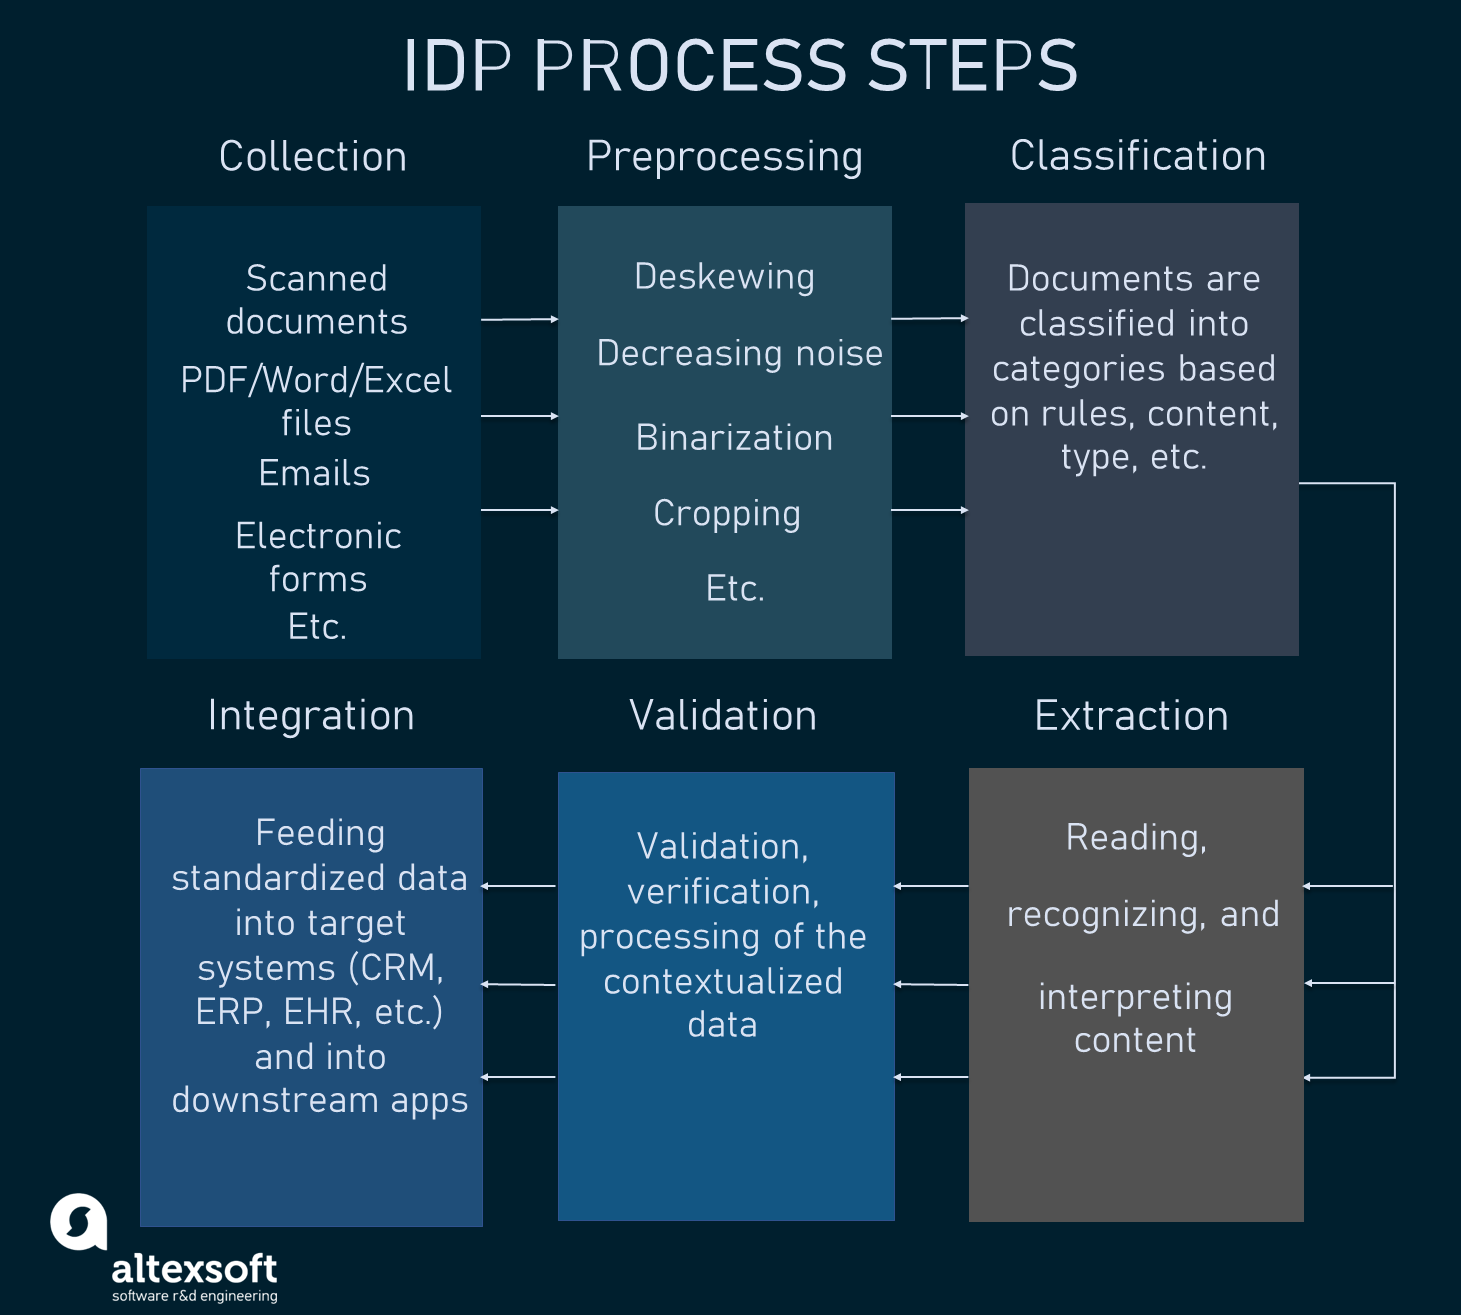 The typical IDP process in steps